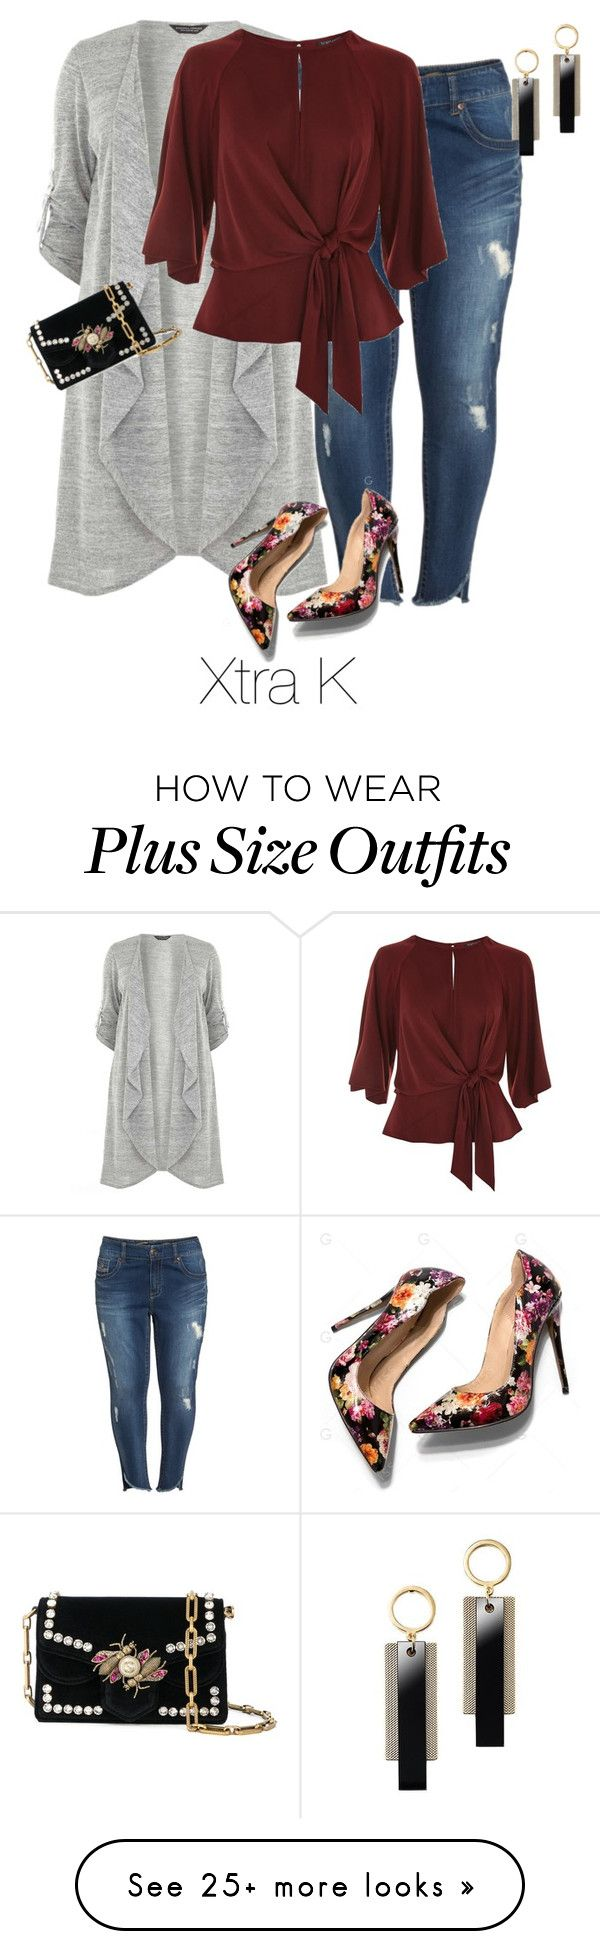 """Plus Easy Date Night"" by xtrak on Polyvore featuring Dorothy Perkins, Seven7 Jeans, Topshop, Avon and Proenza Schouler"